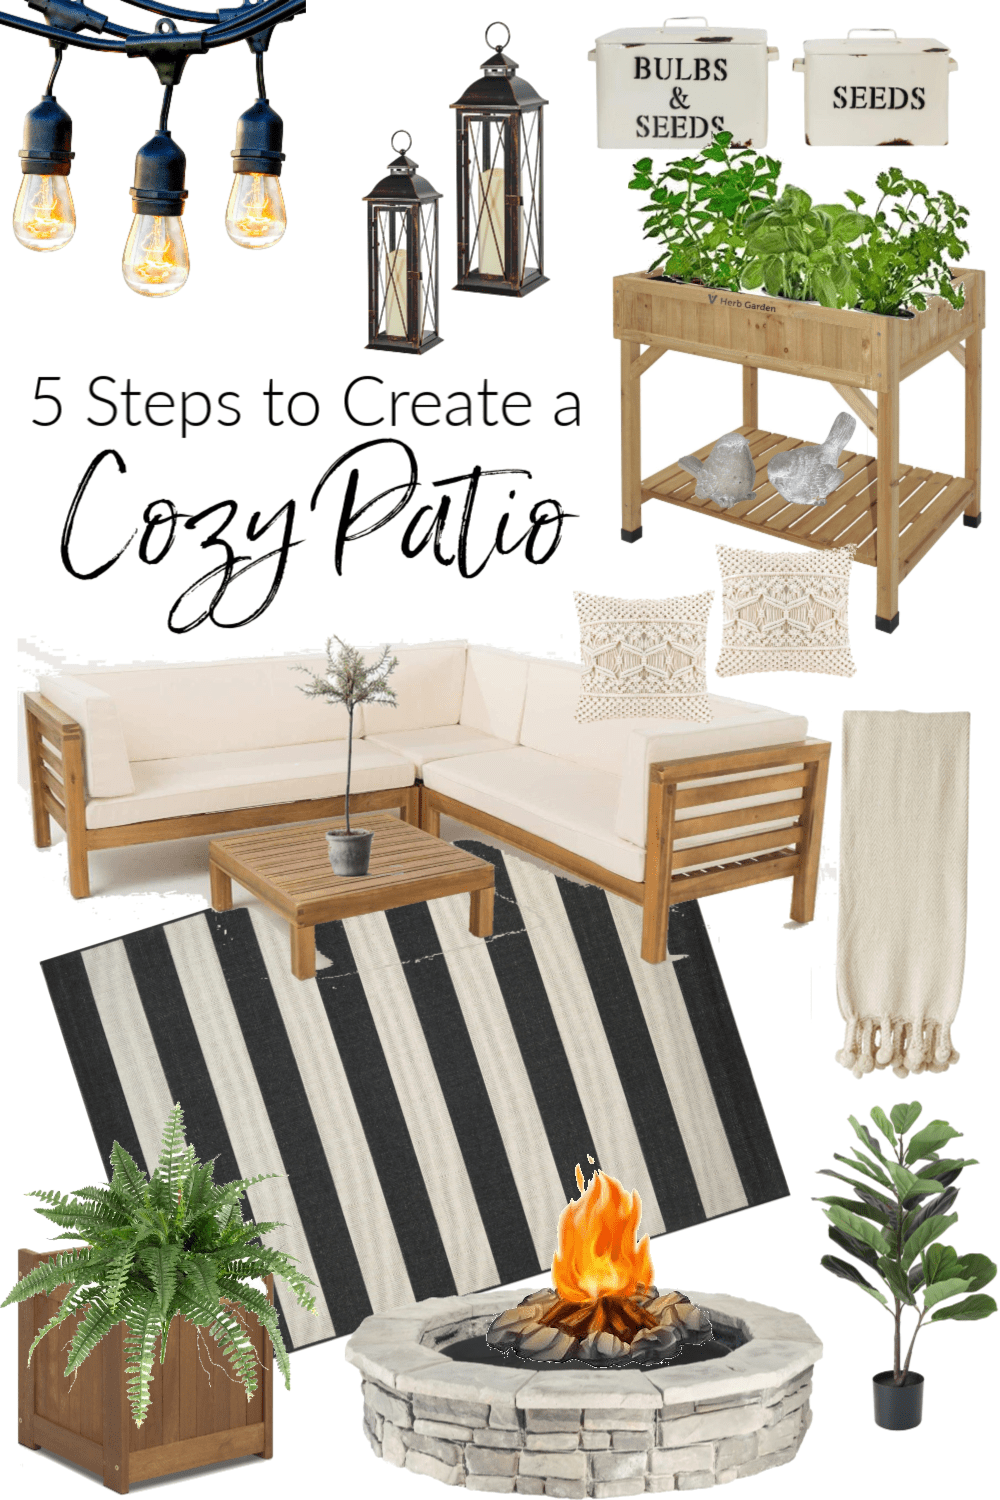 Do you want to create a cozy outdoor space but don't know where to start. I'm sharing how to create a cozy patio by adding 5 simple elements.